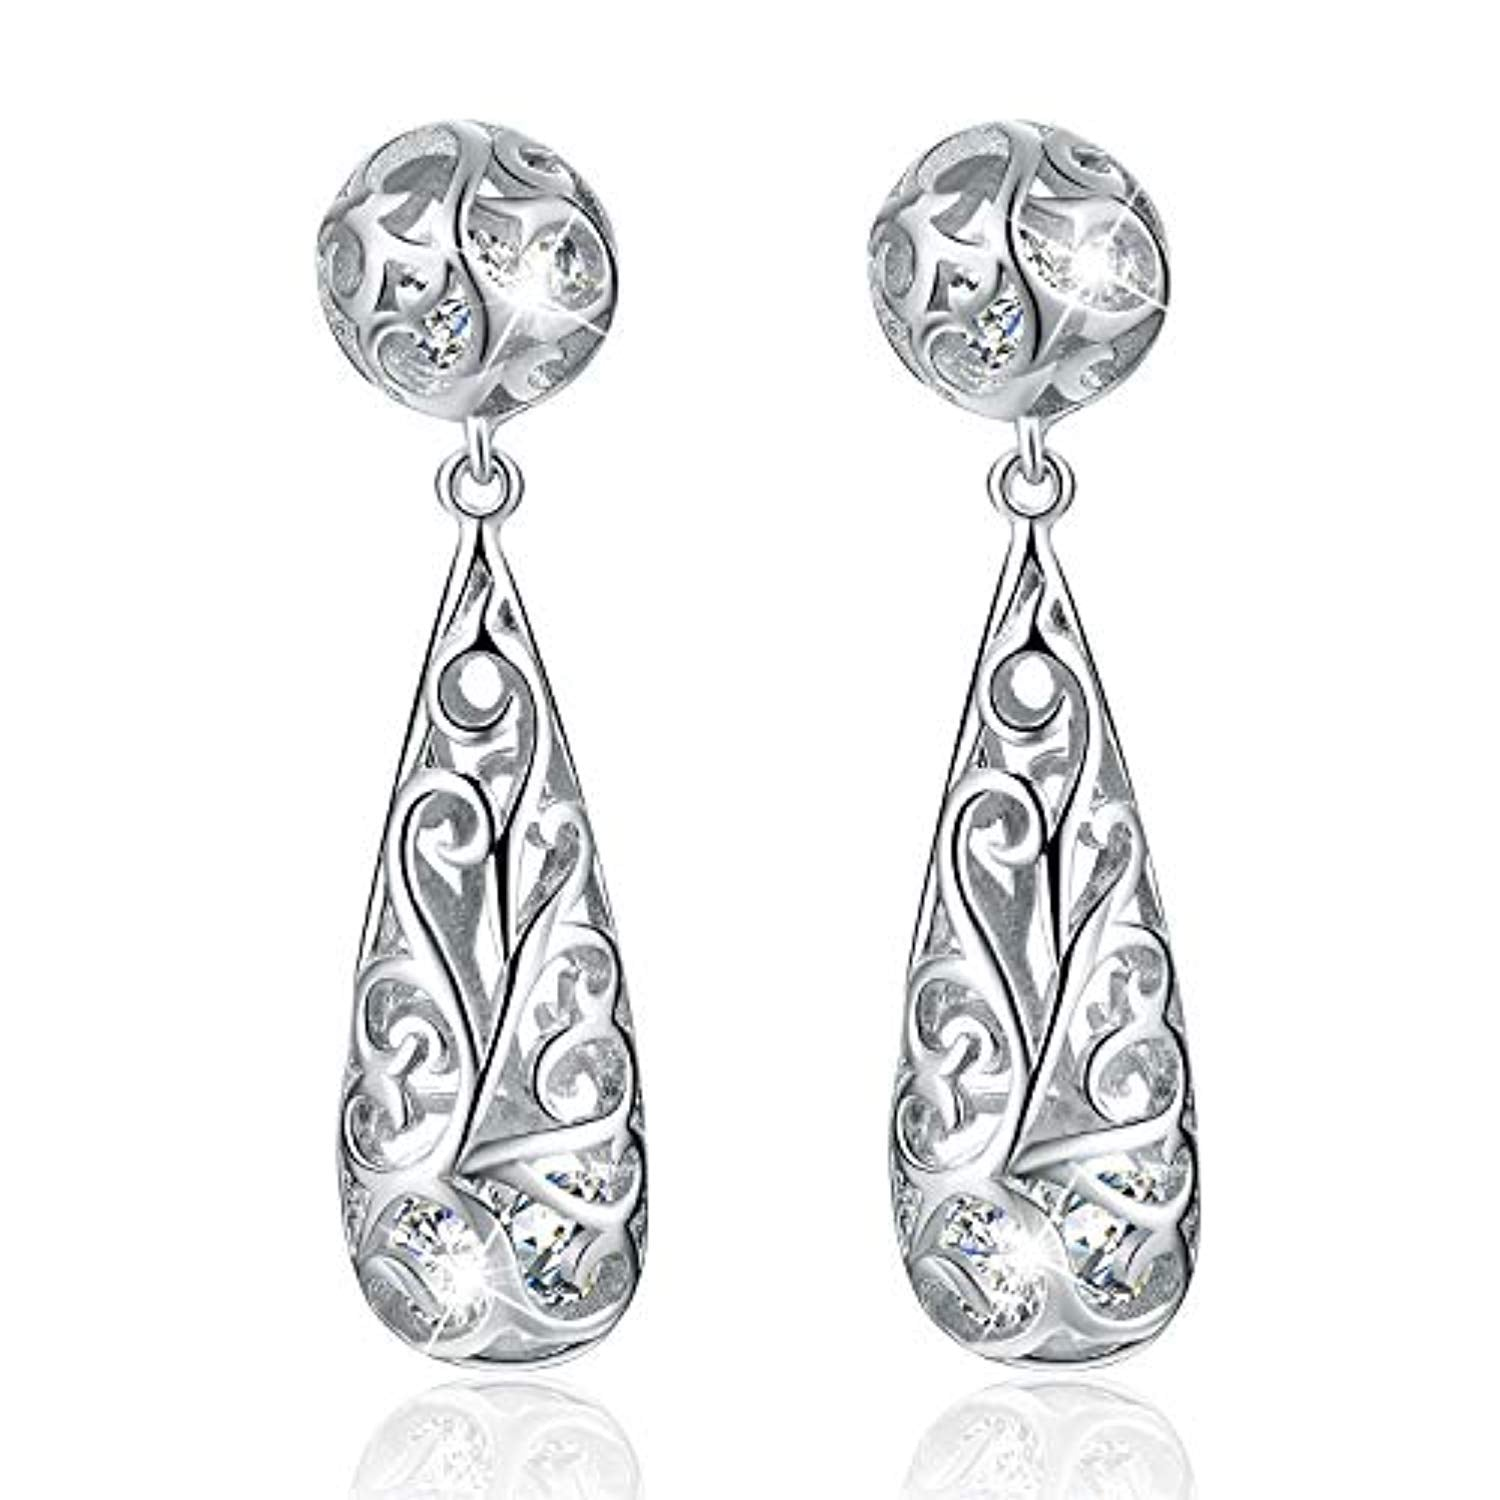 925 Sterling Silver Filigree Puffed Teardrop Earrings Hollow Dangle Earrings with Cubic Zirconia